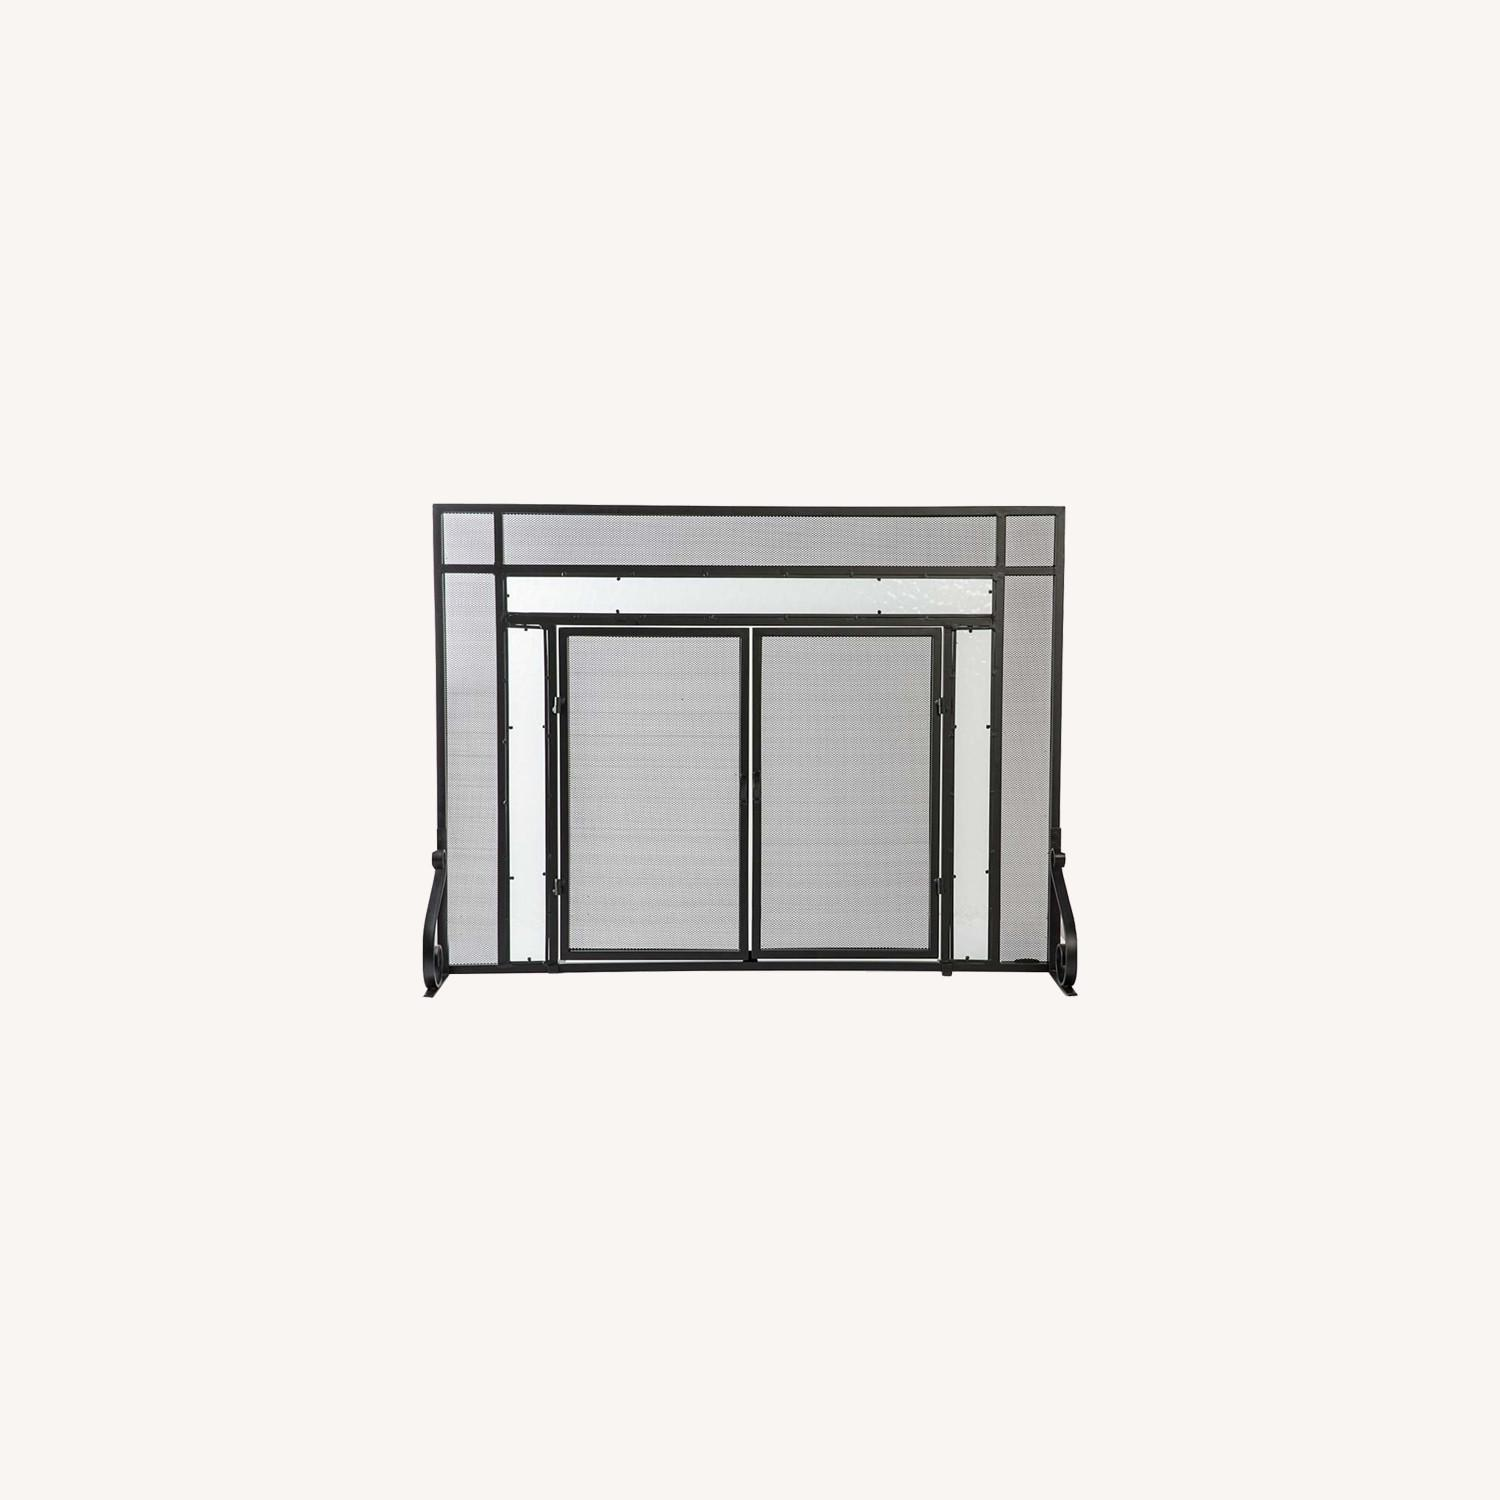 Plow & Hearth Fireplace Screen - image-0